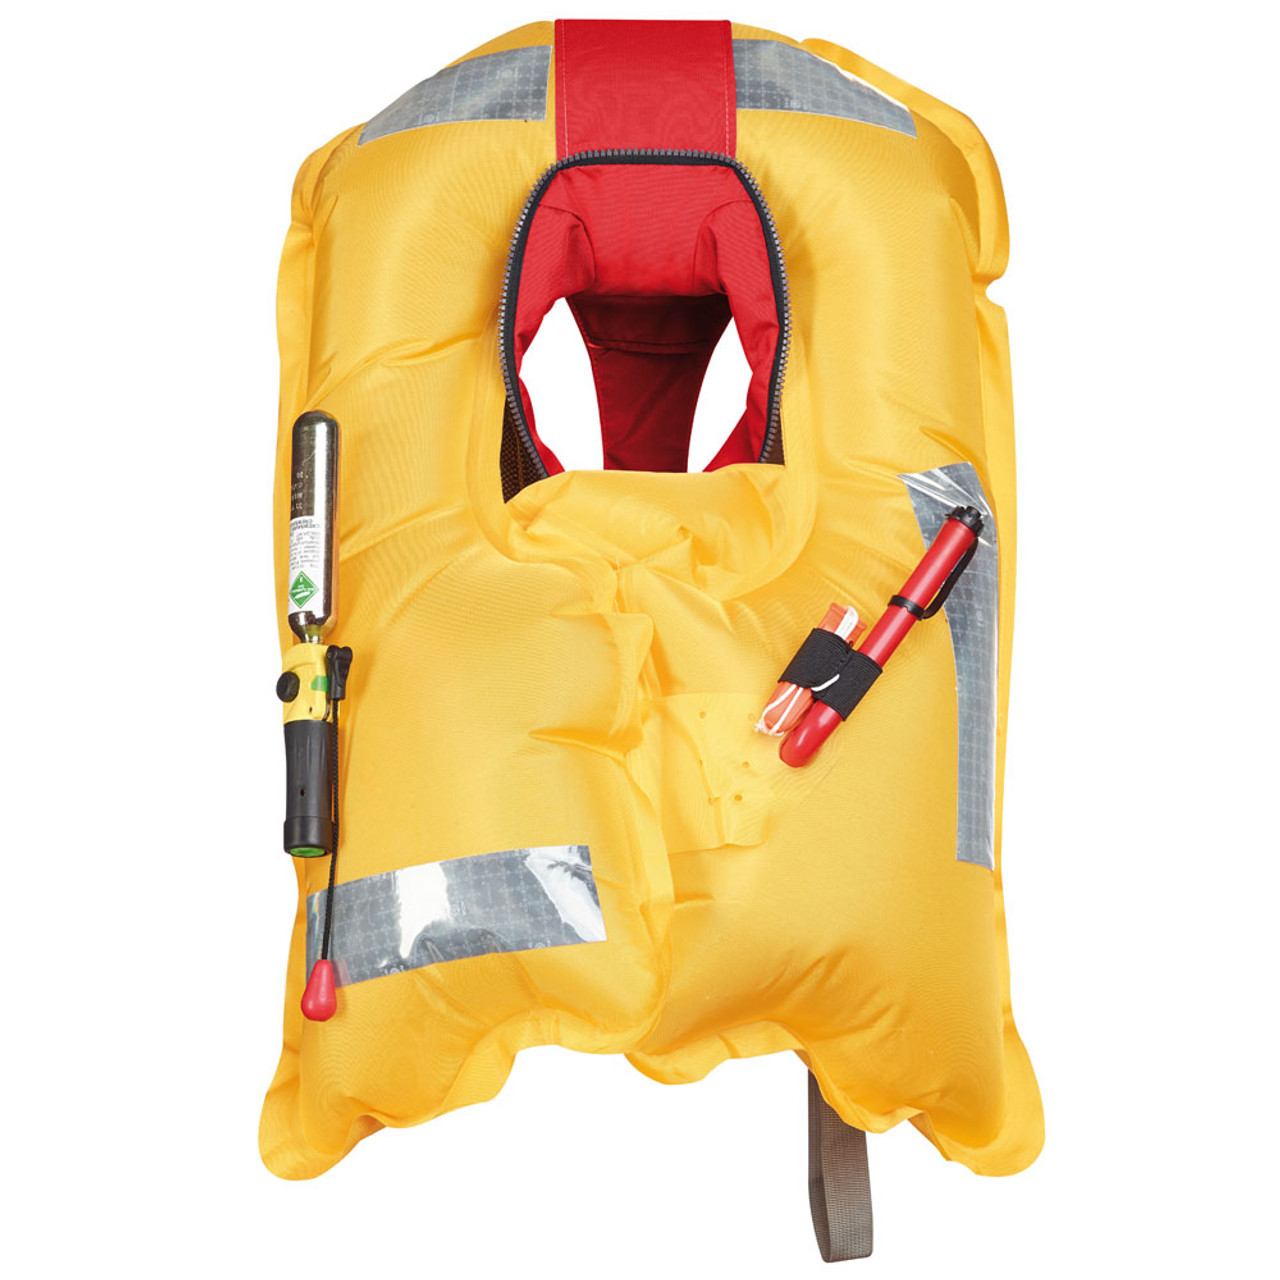 Crewsaver Crewfit Red Manual Inflatable Lifejacket with Harness attachment loop.